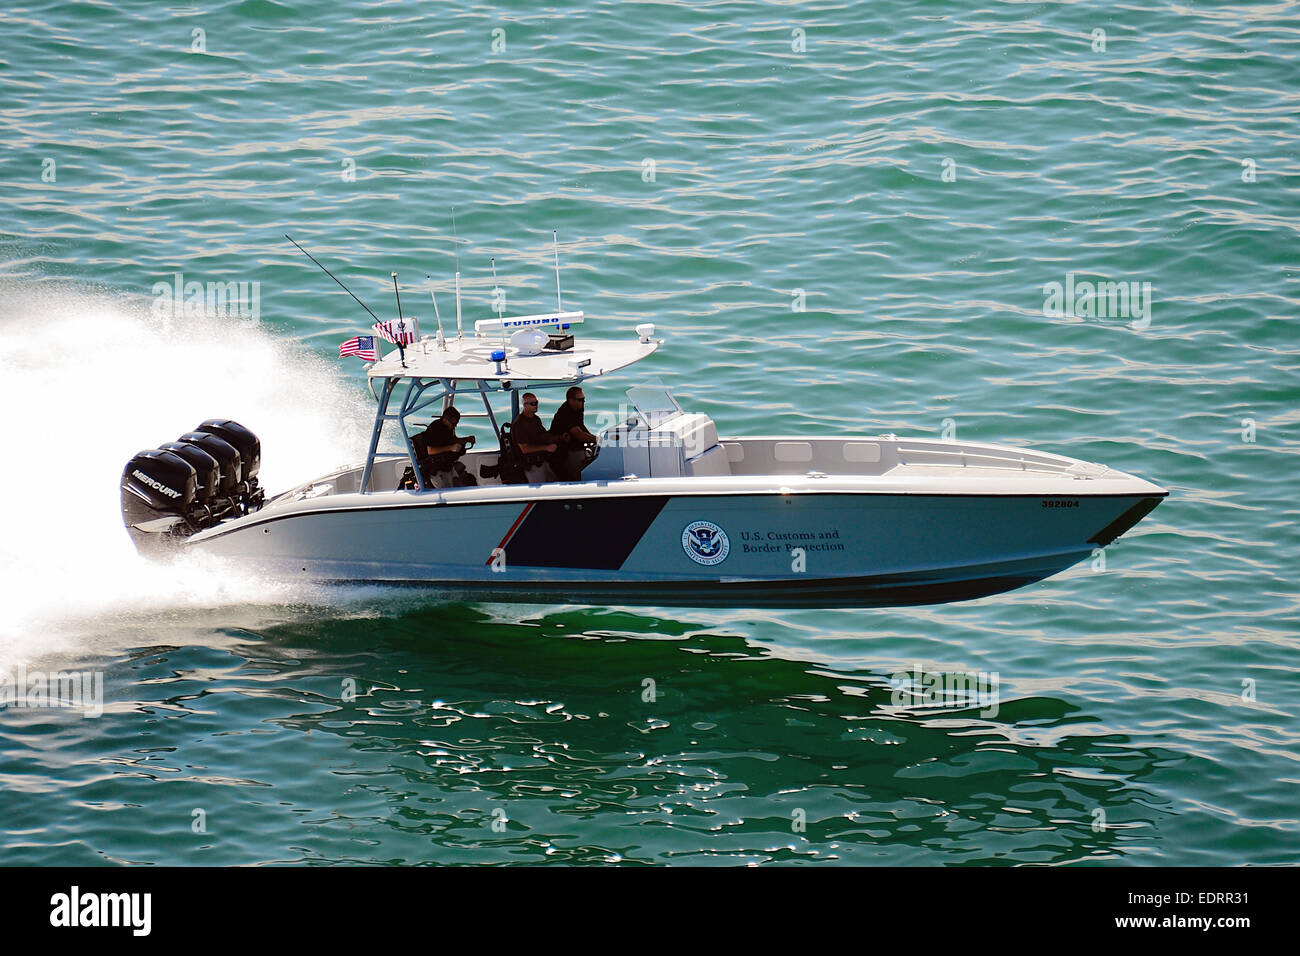 "US Customs and Border Protection Marine unit operating a 1200HP 39' Midnight Express Boat, the ""the most powerful - Stock Image"